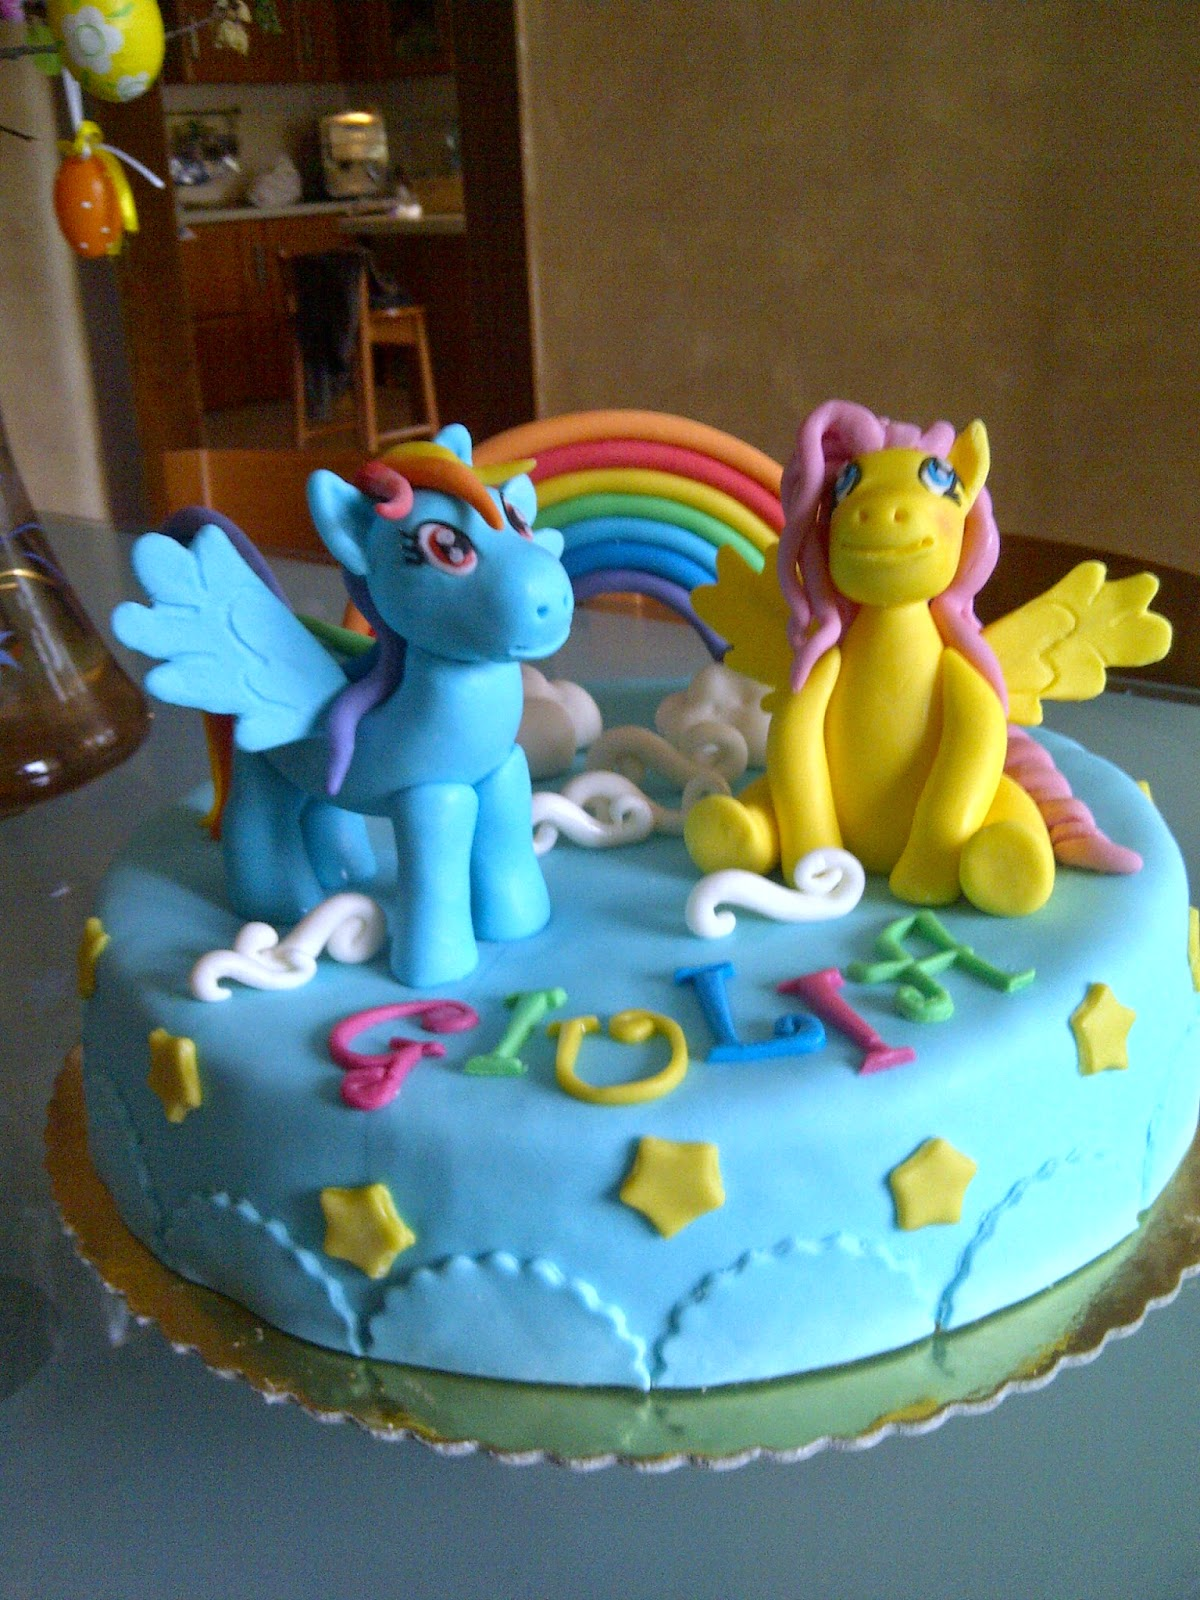 Image Result For My Little Pony Rainbow Dash Cake Pan